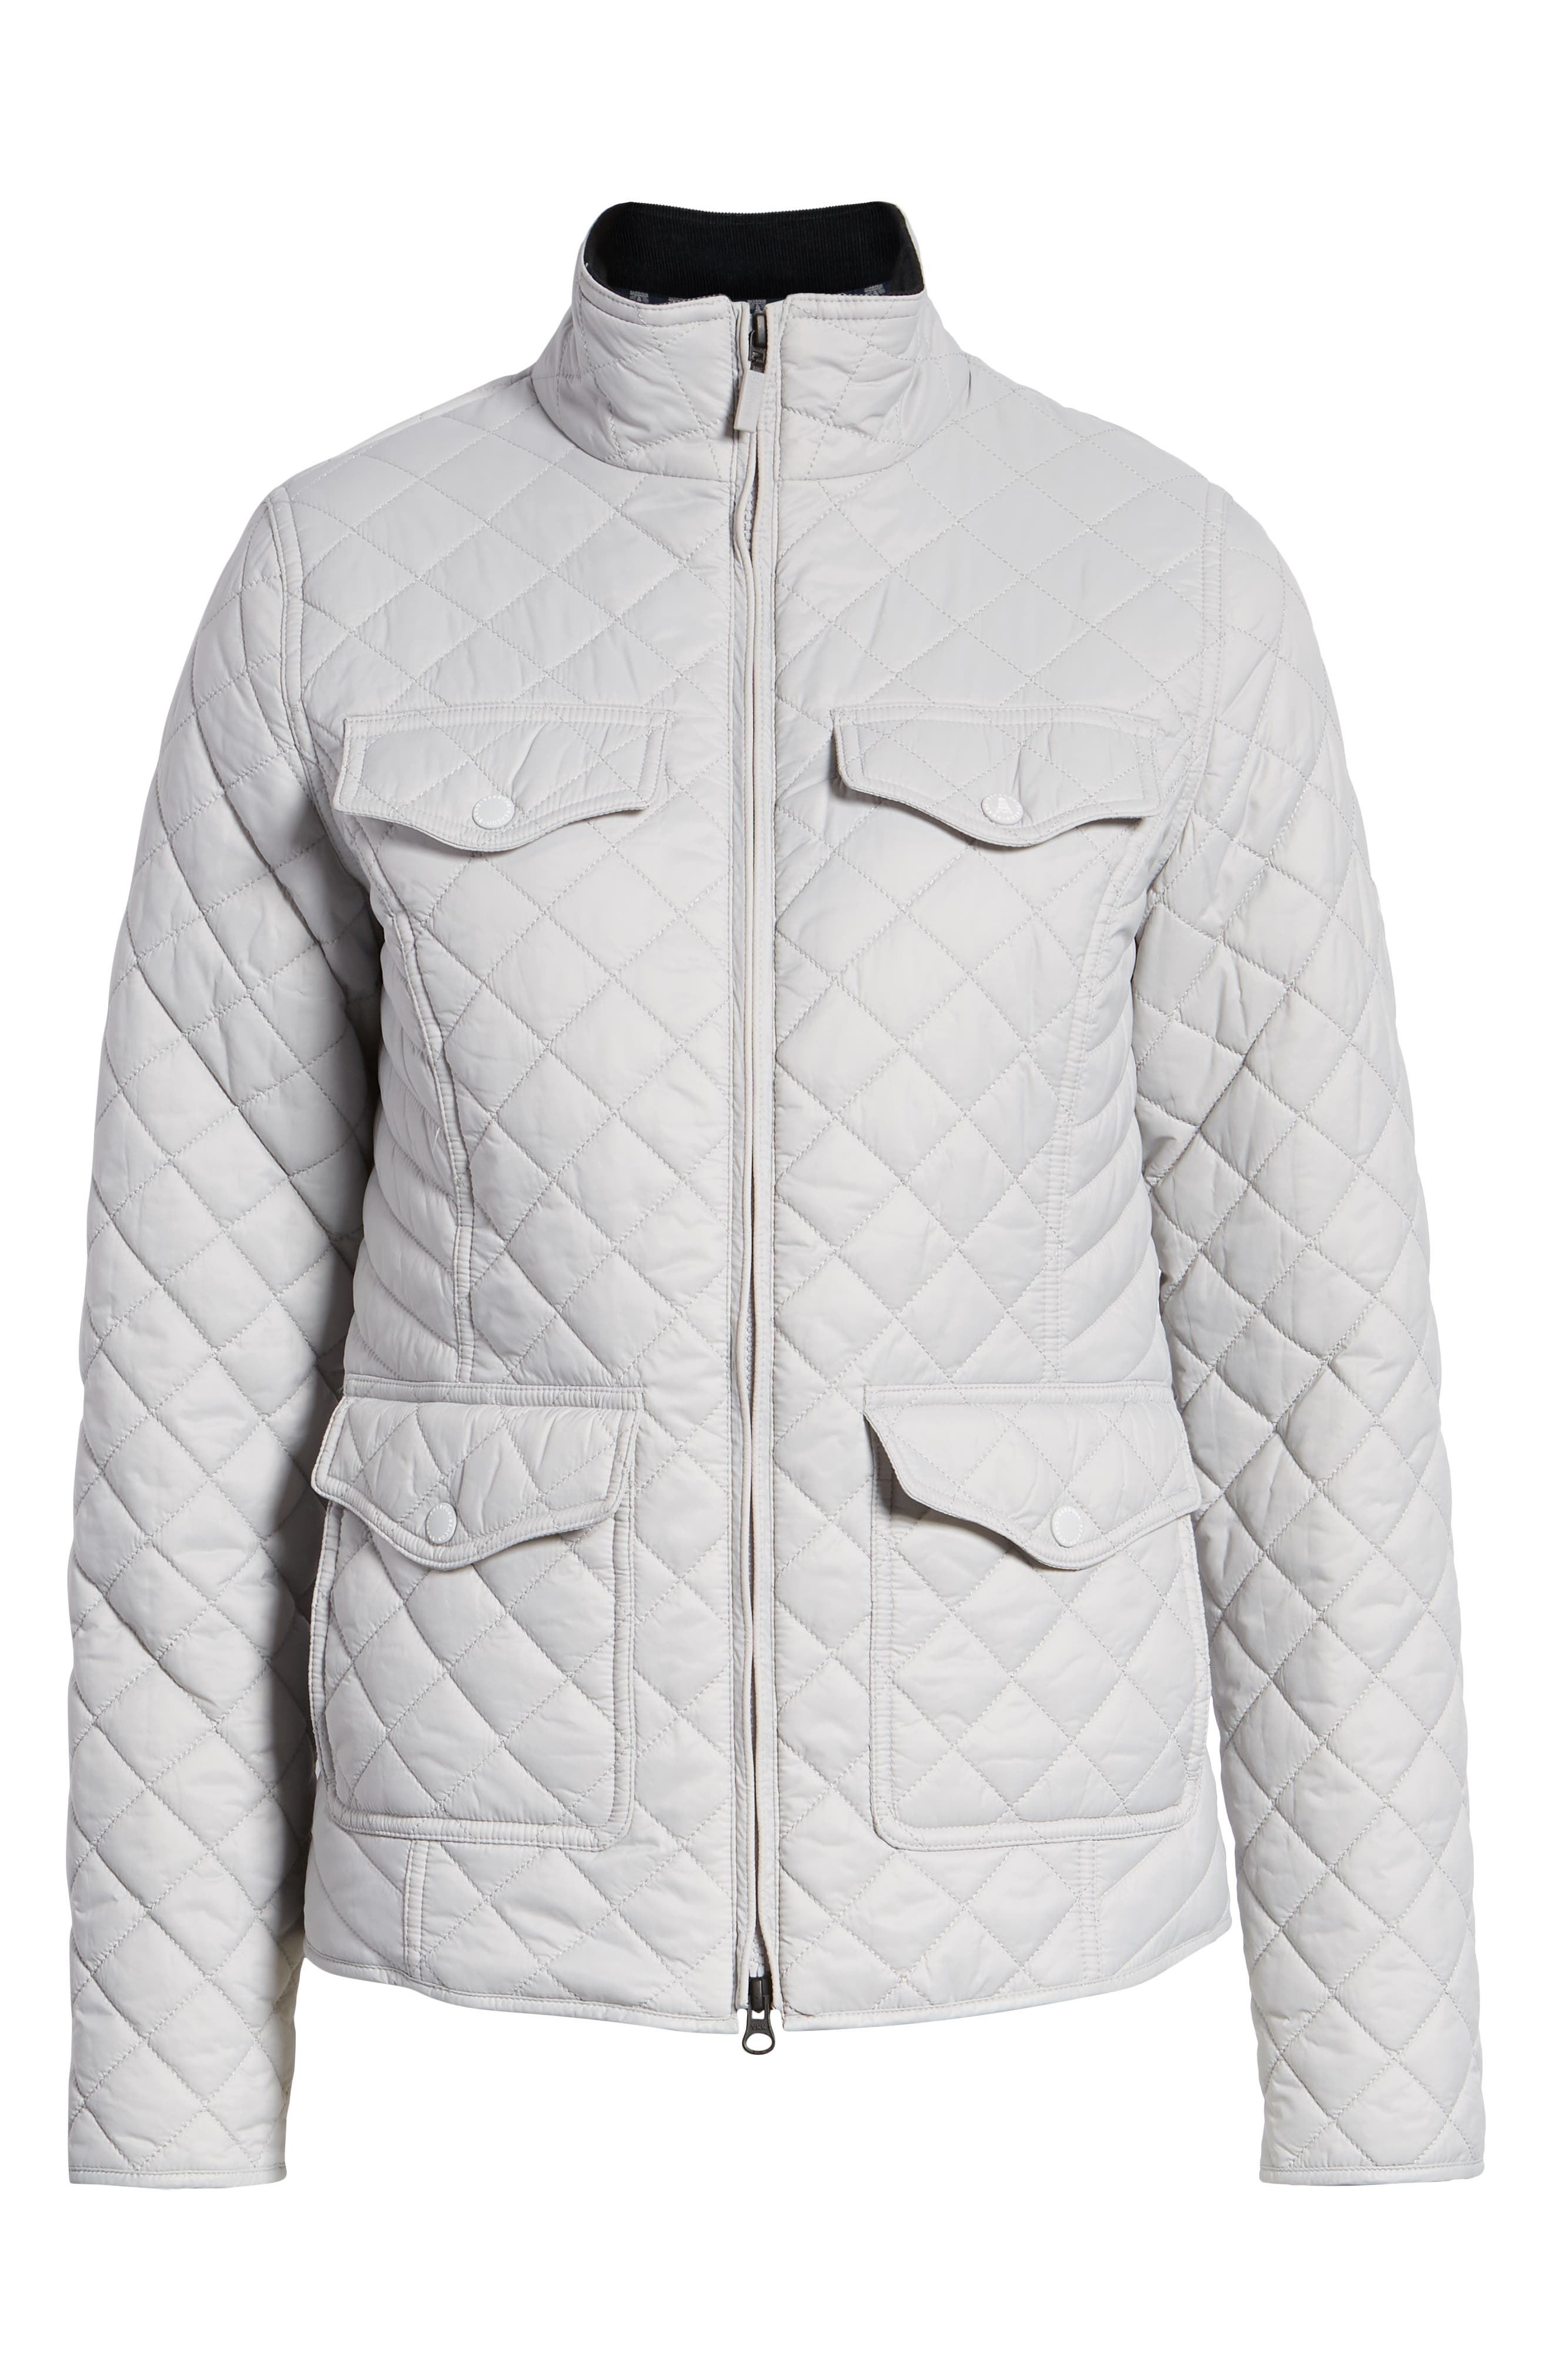 BARBOUR, Sailboat Quilted Jacket, Alternate thumbnail 6, color, 100